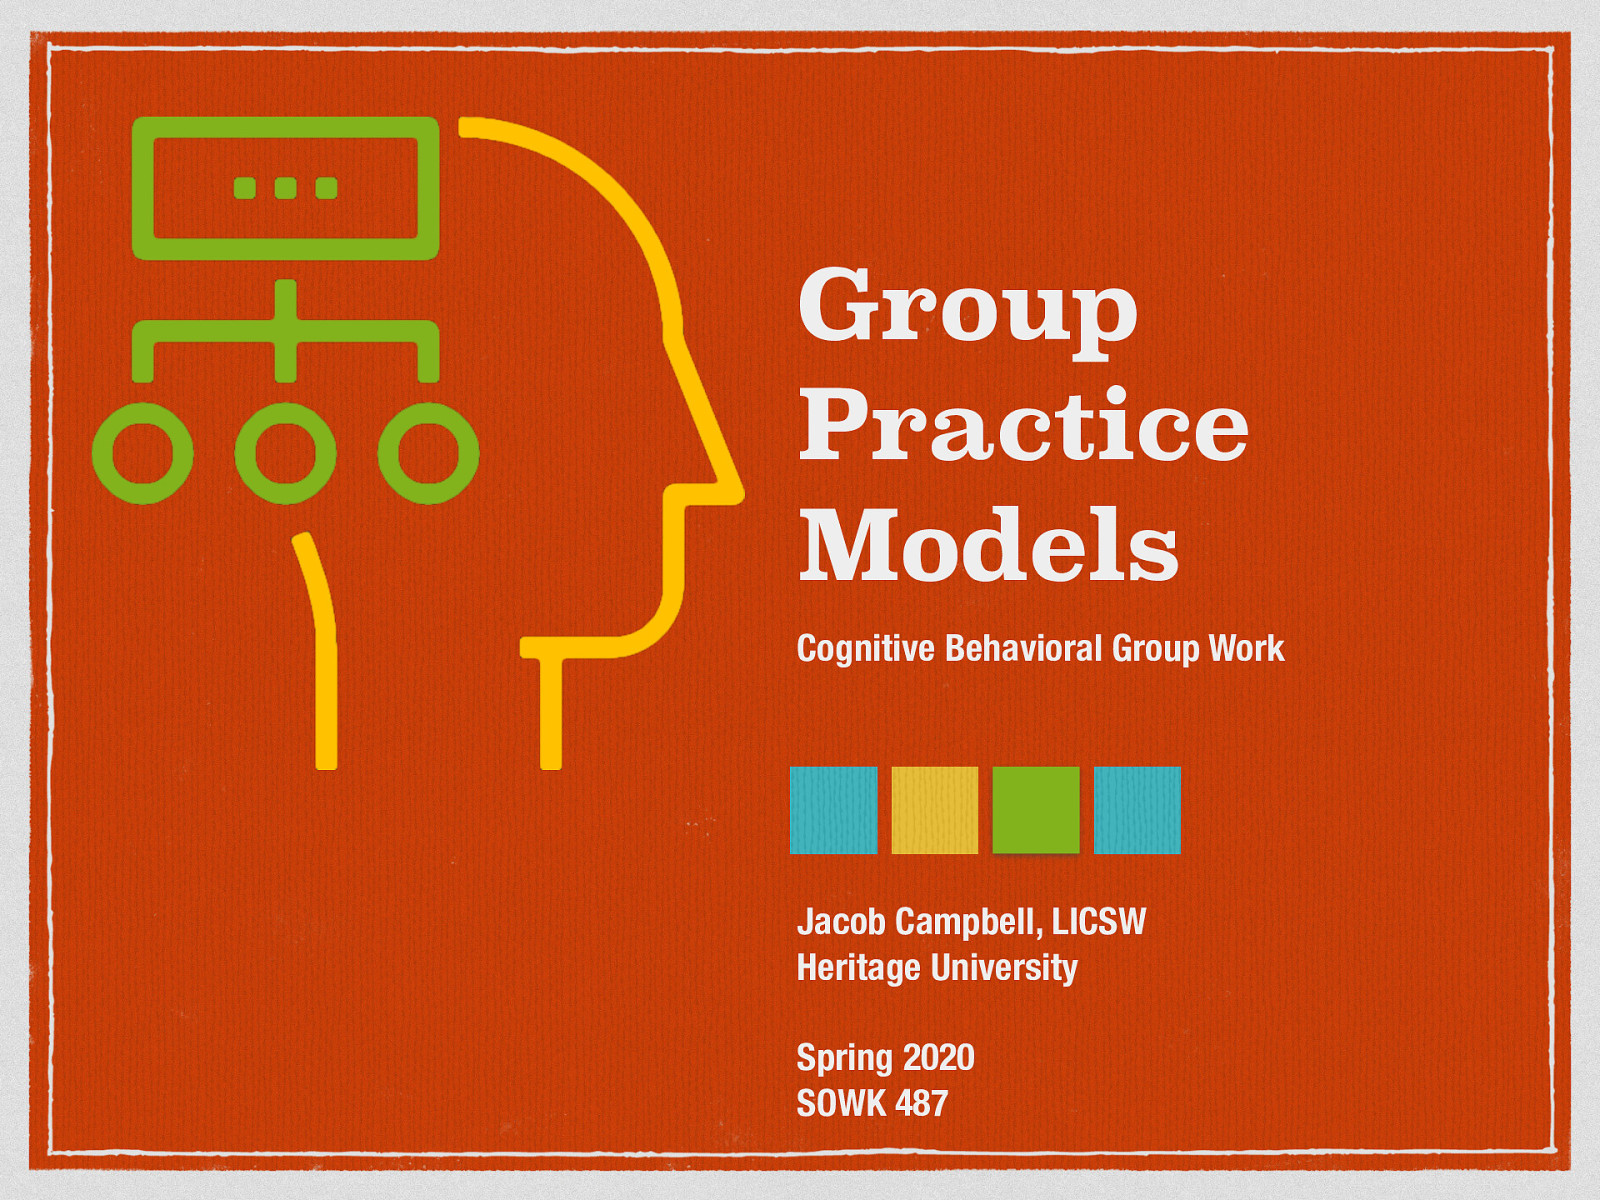 Week 05 - Cognitive Behavioral Group Work